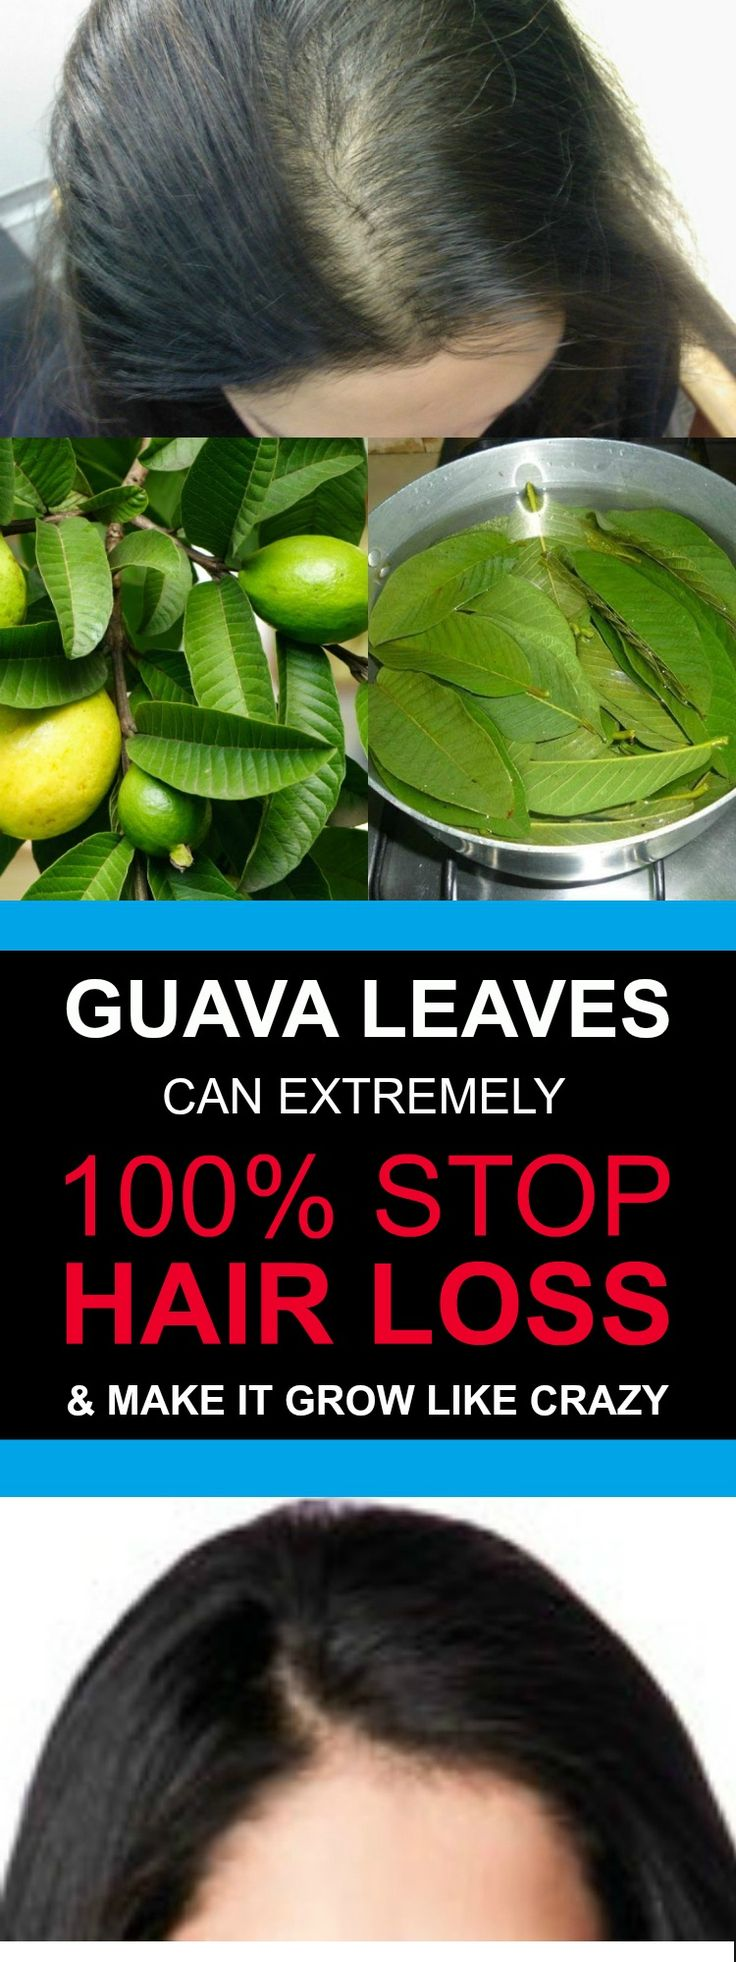 GUAVA LEAVES CAN EXTREMELY 100% STOP HAIR LOSS AND MAKE IT GROW LIKE CRAZY1